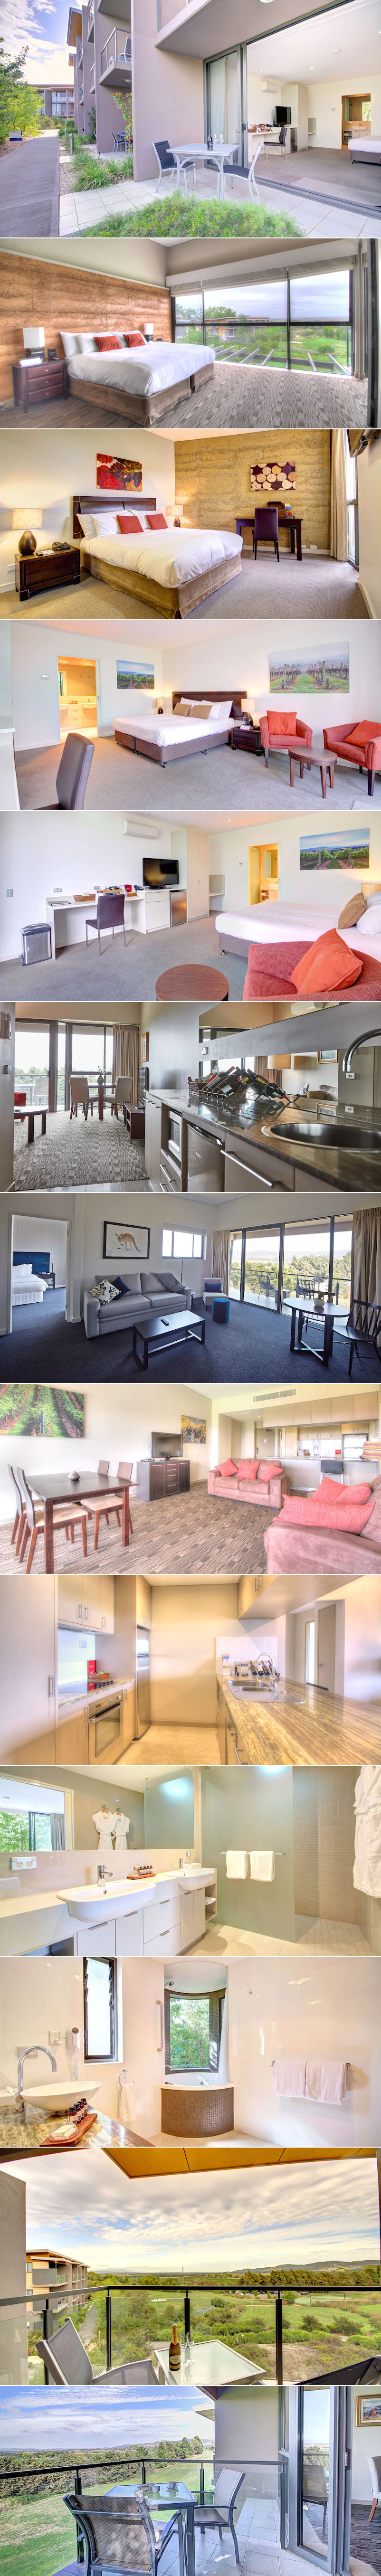 Balgownie Estate Vineyard Resort